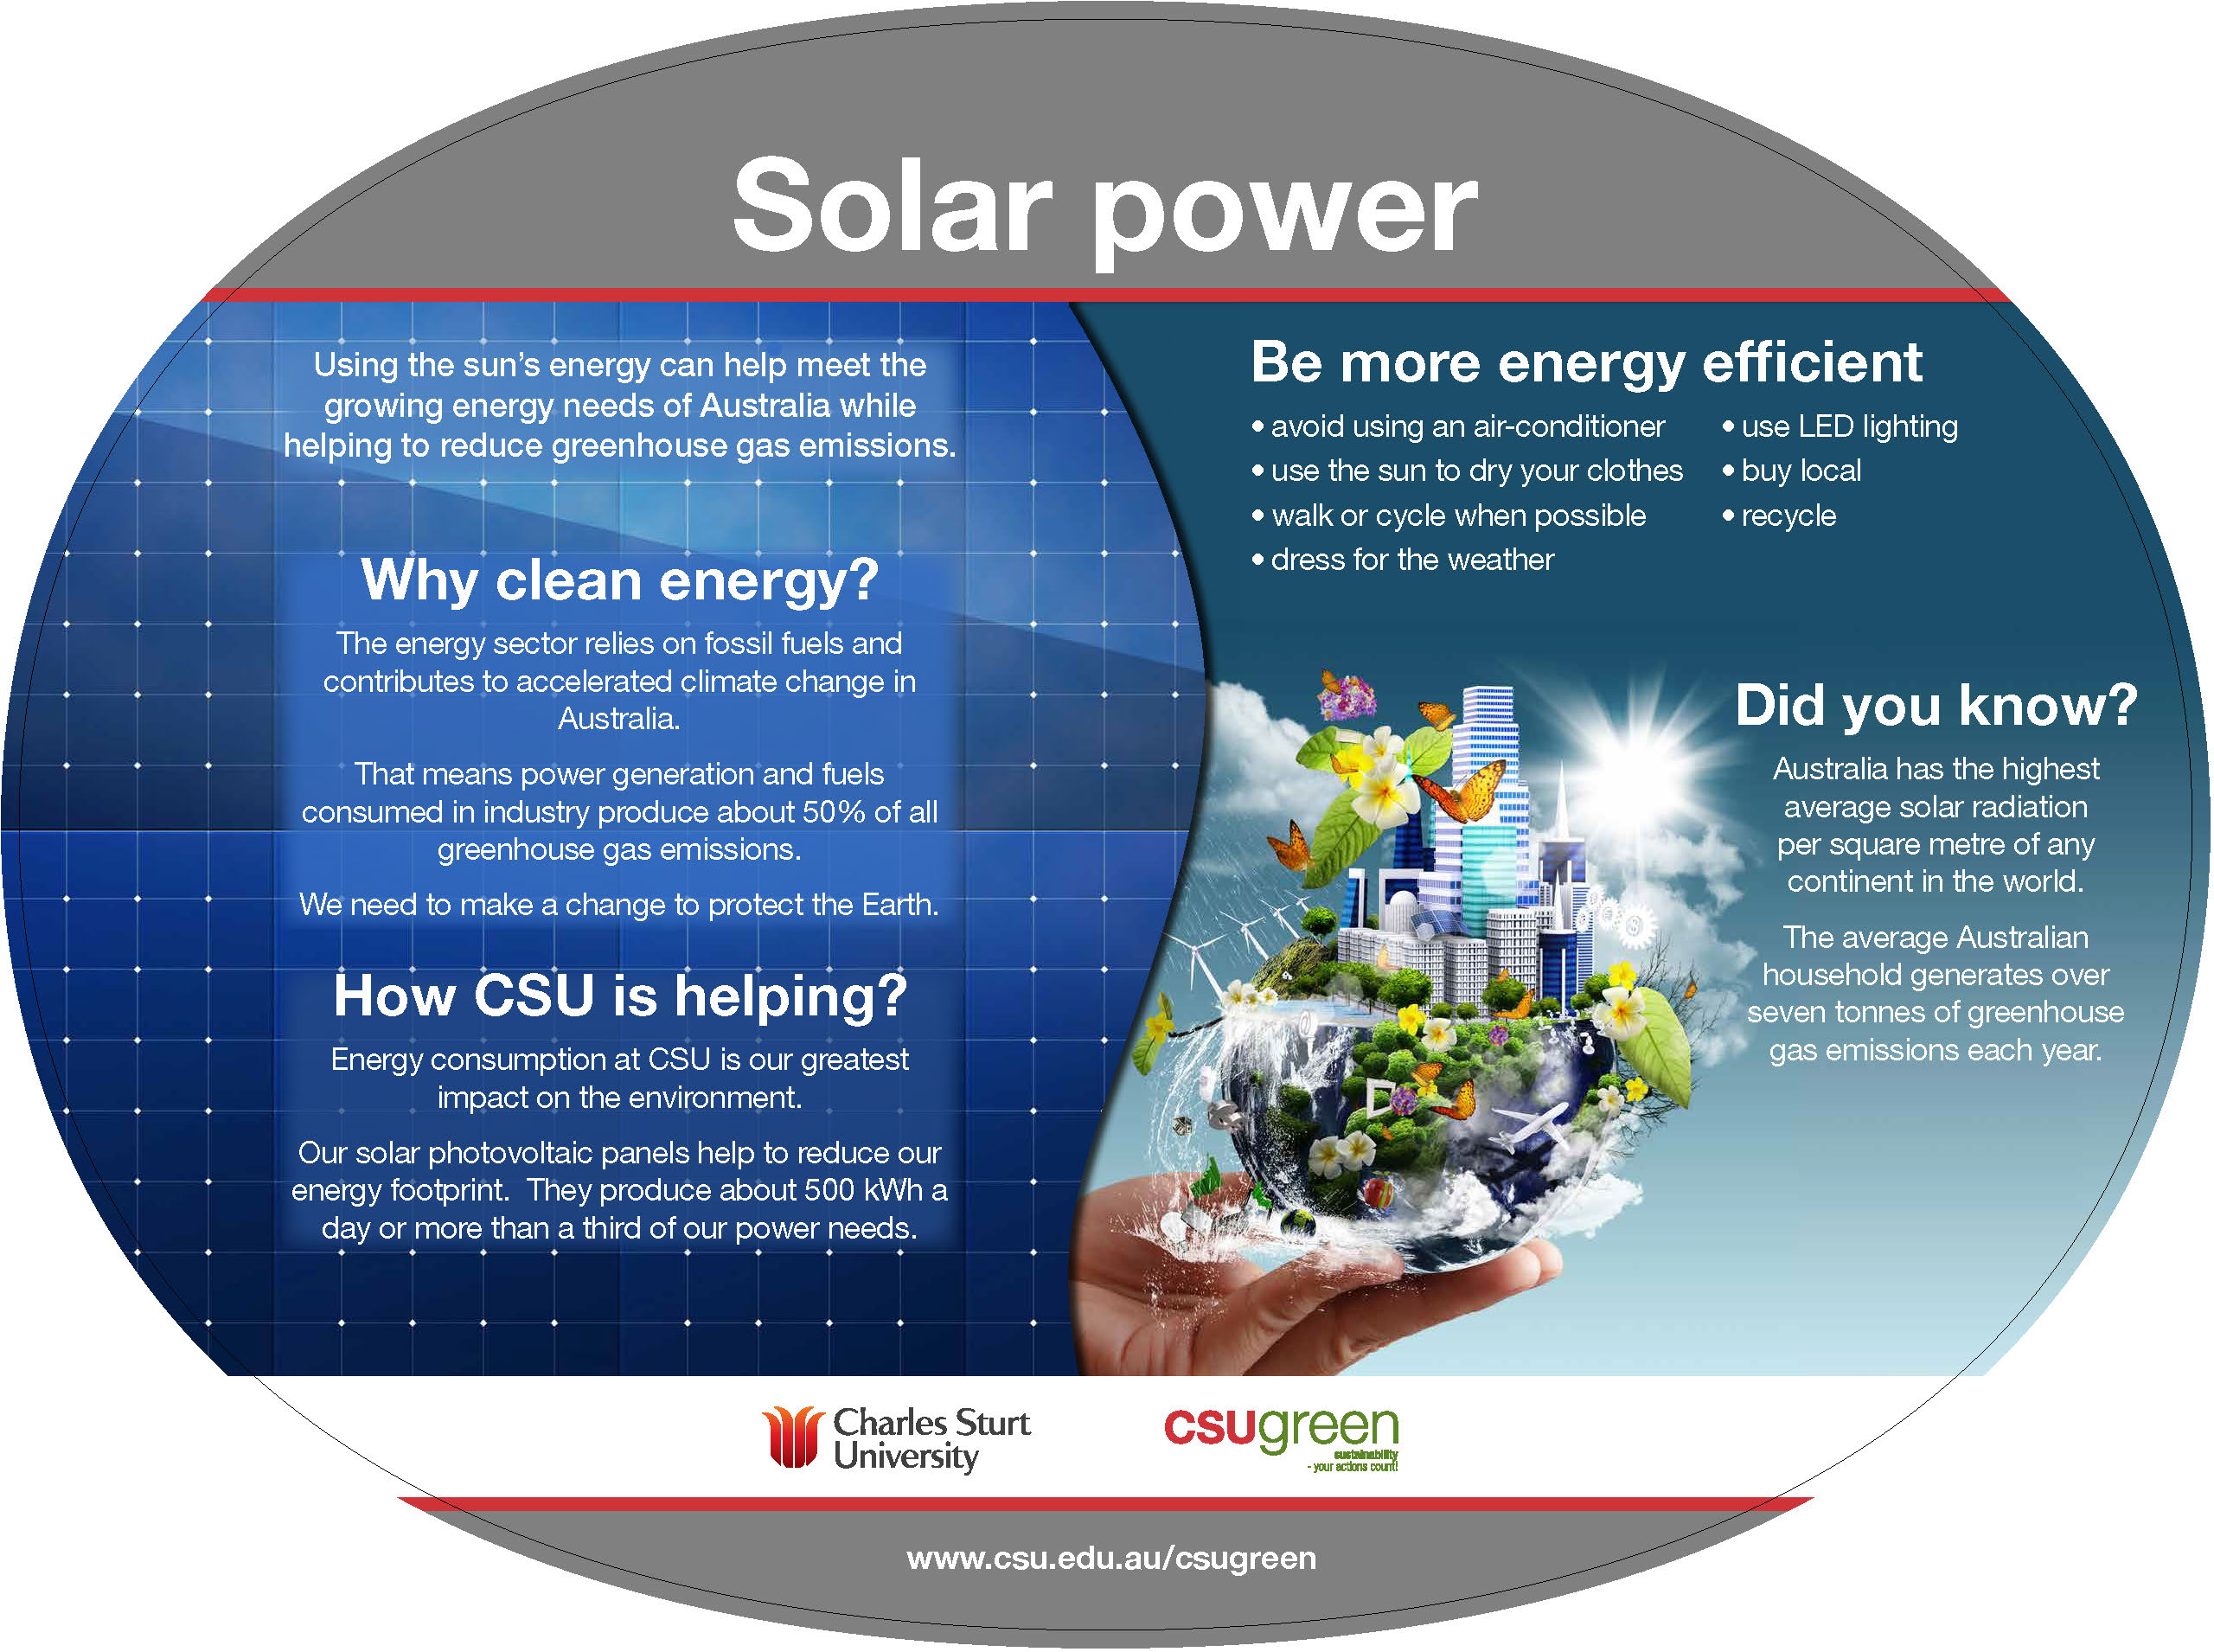 Port Macquarie campus solar power sign